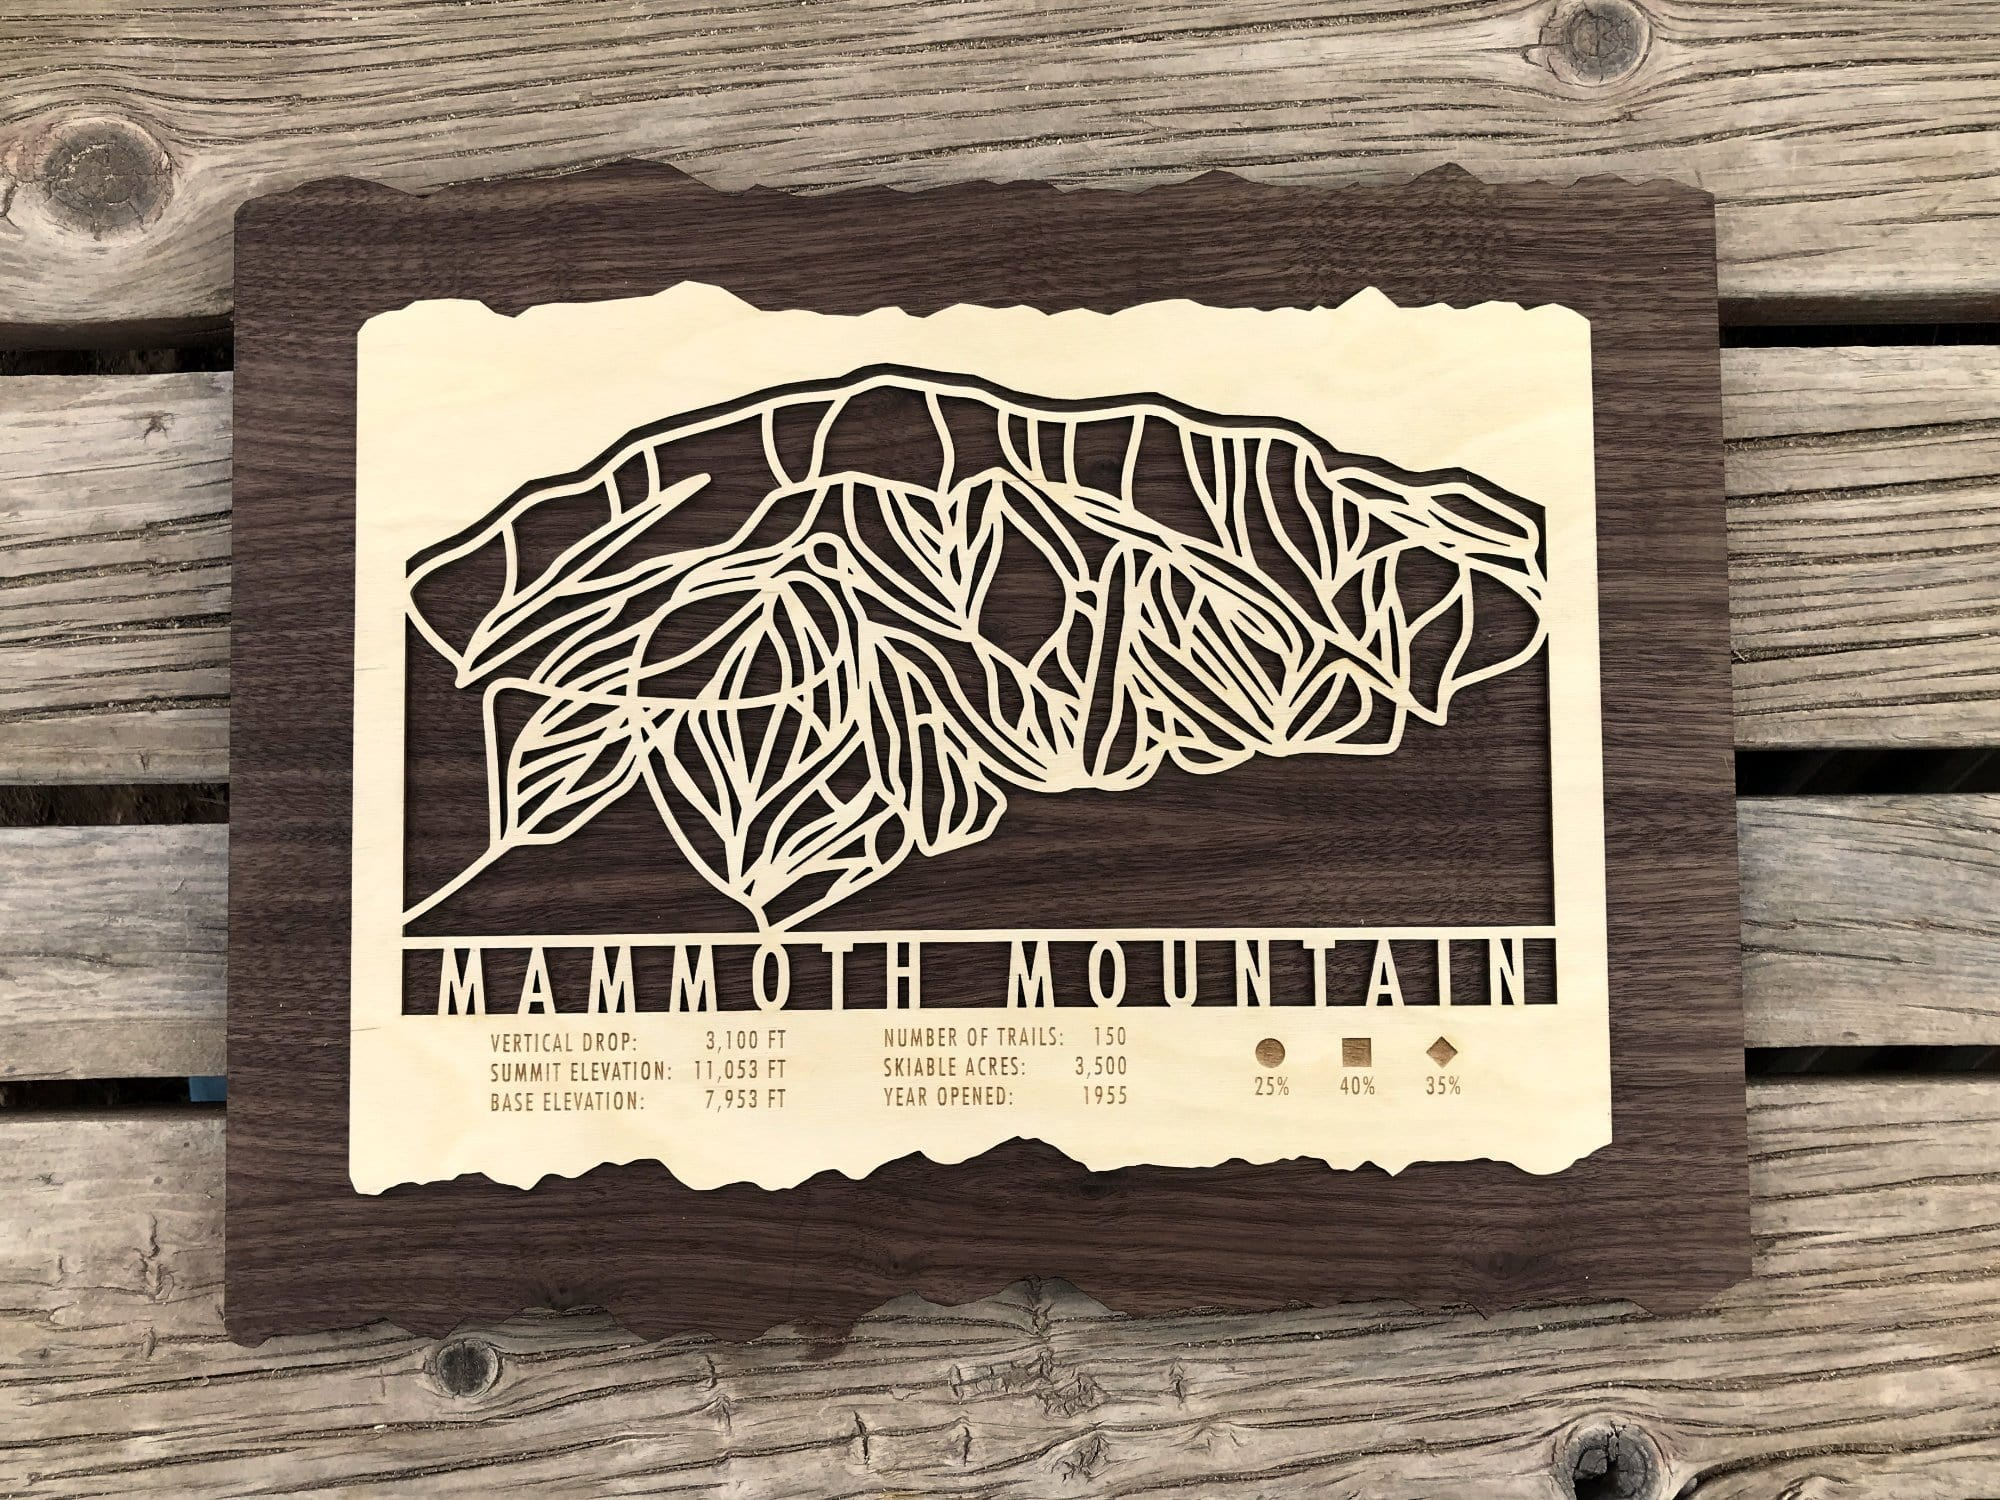 mammoth sites in north america maps, mammoth california airport map, mammoth resort map, june mountain trail map, on mammoth mtn trail map